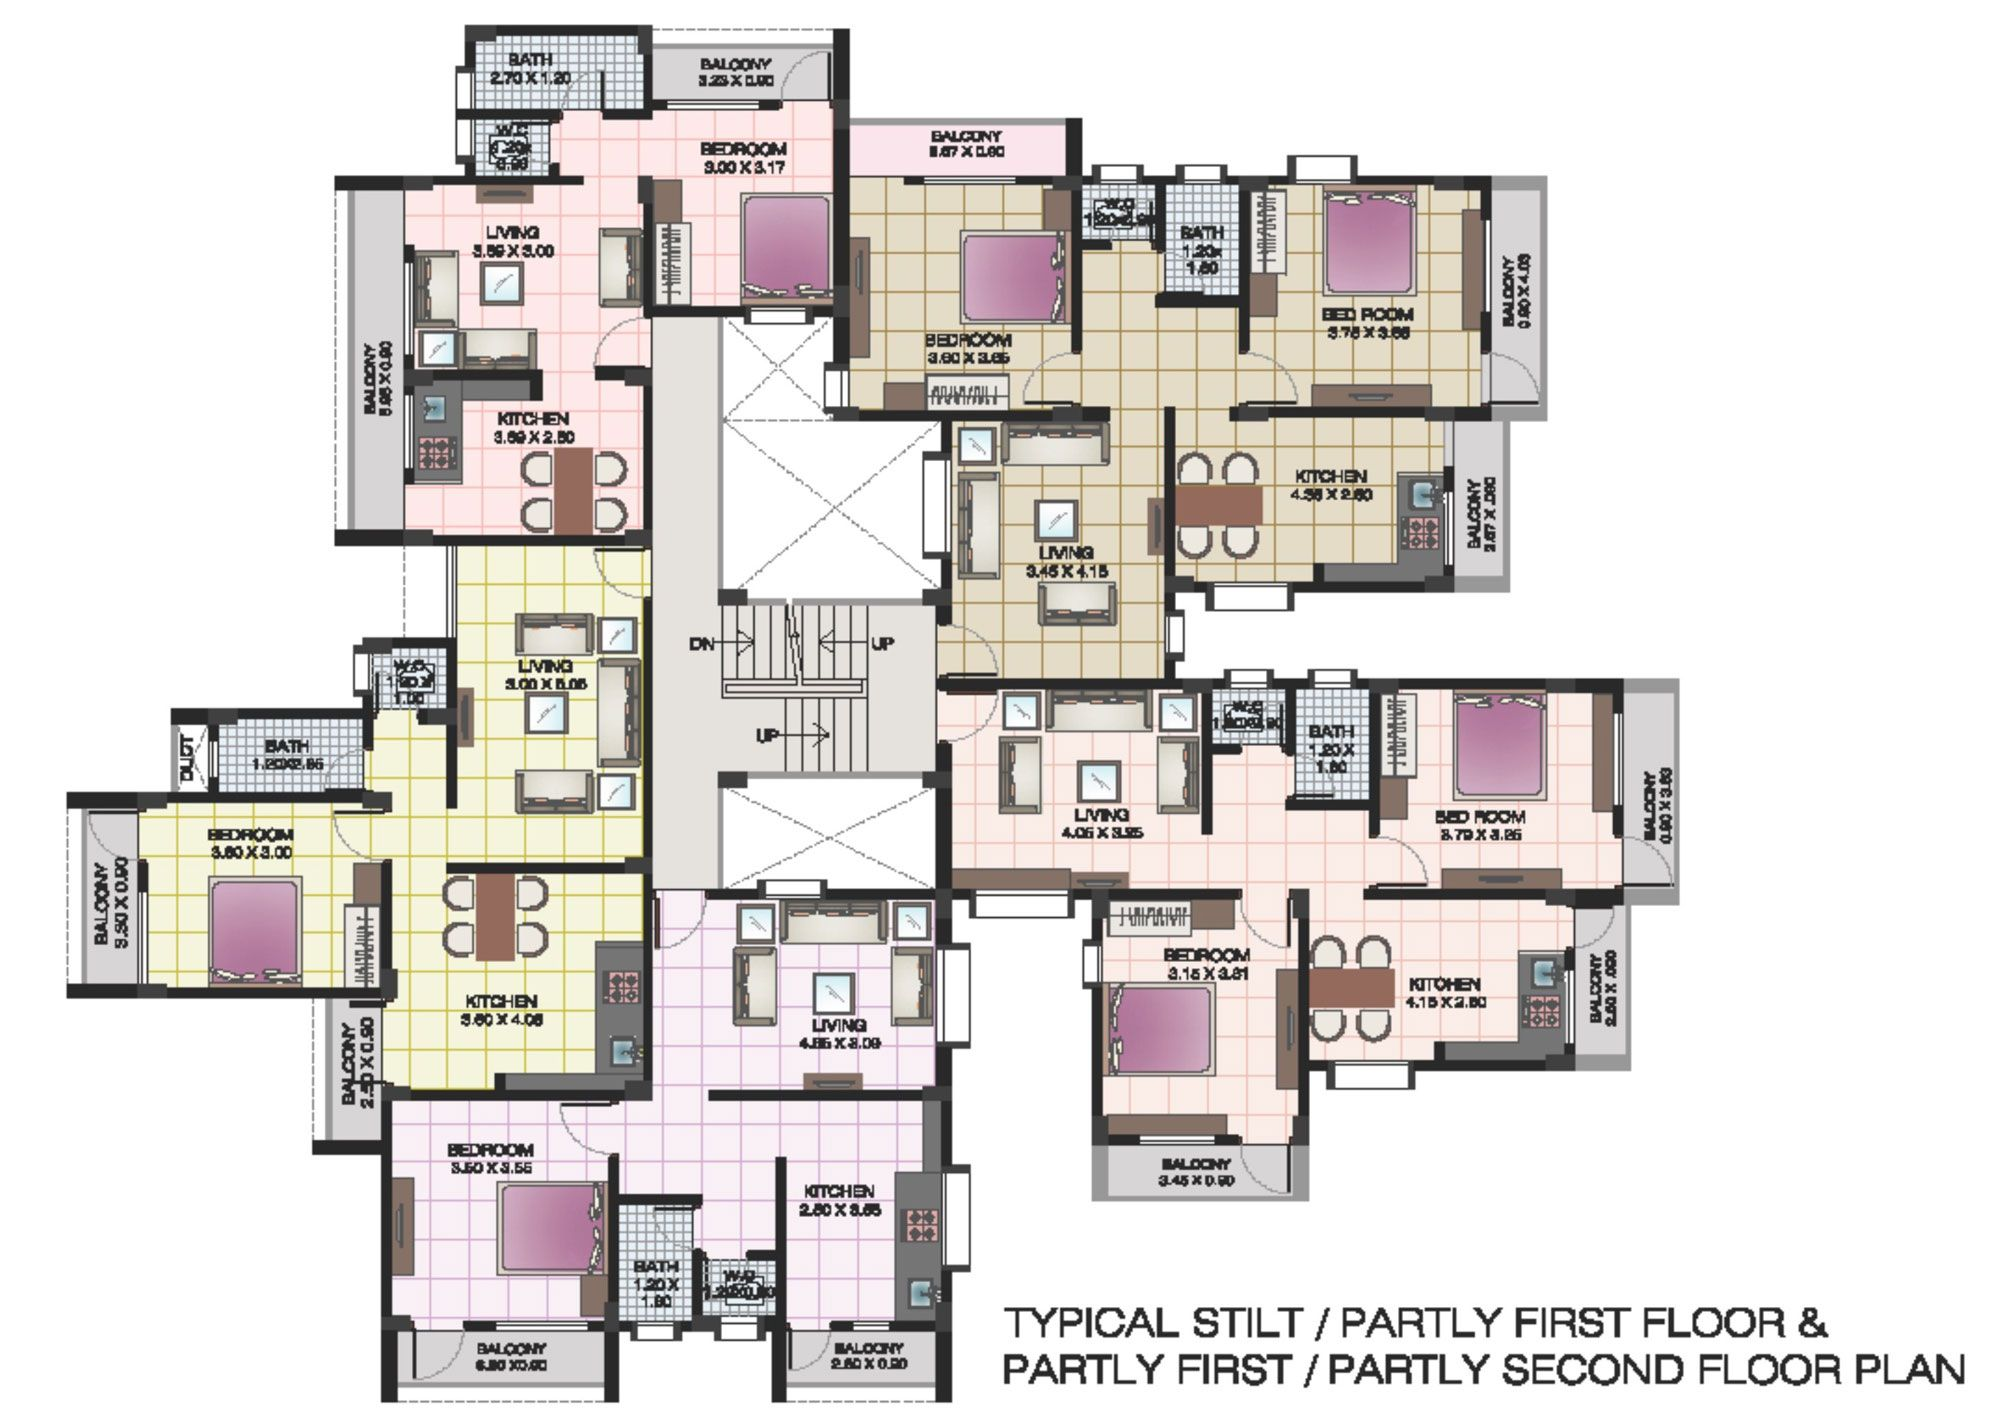 apartment structures | Apartment floor plans of shri krishna ...